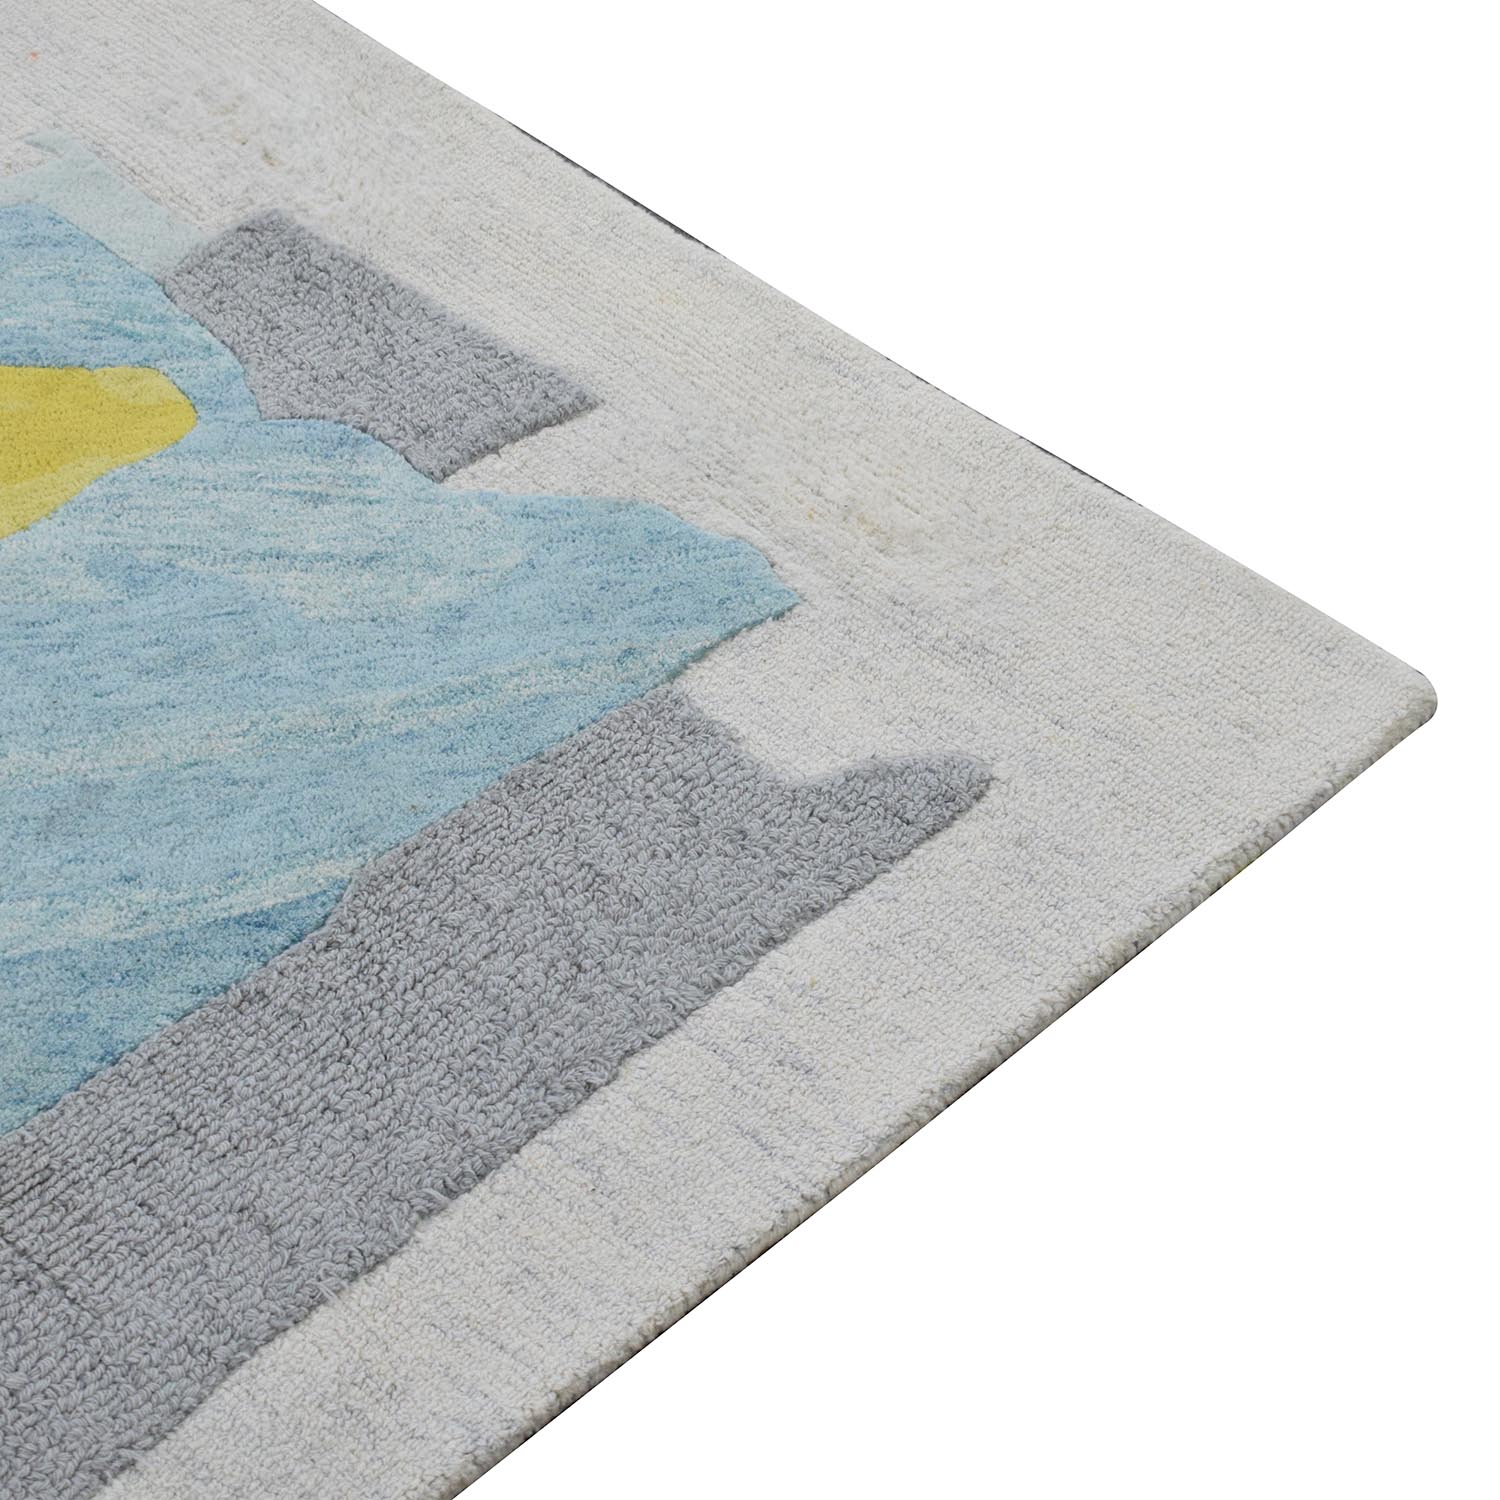 West Elm Painted Blocks Rug sale